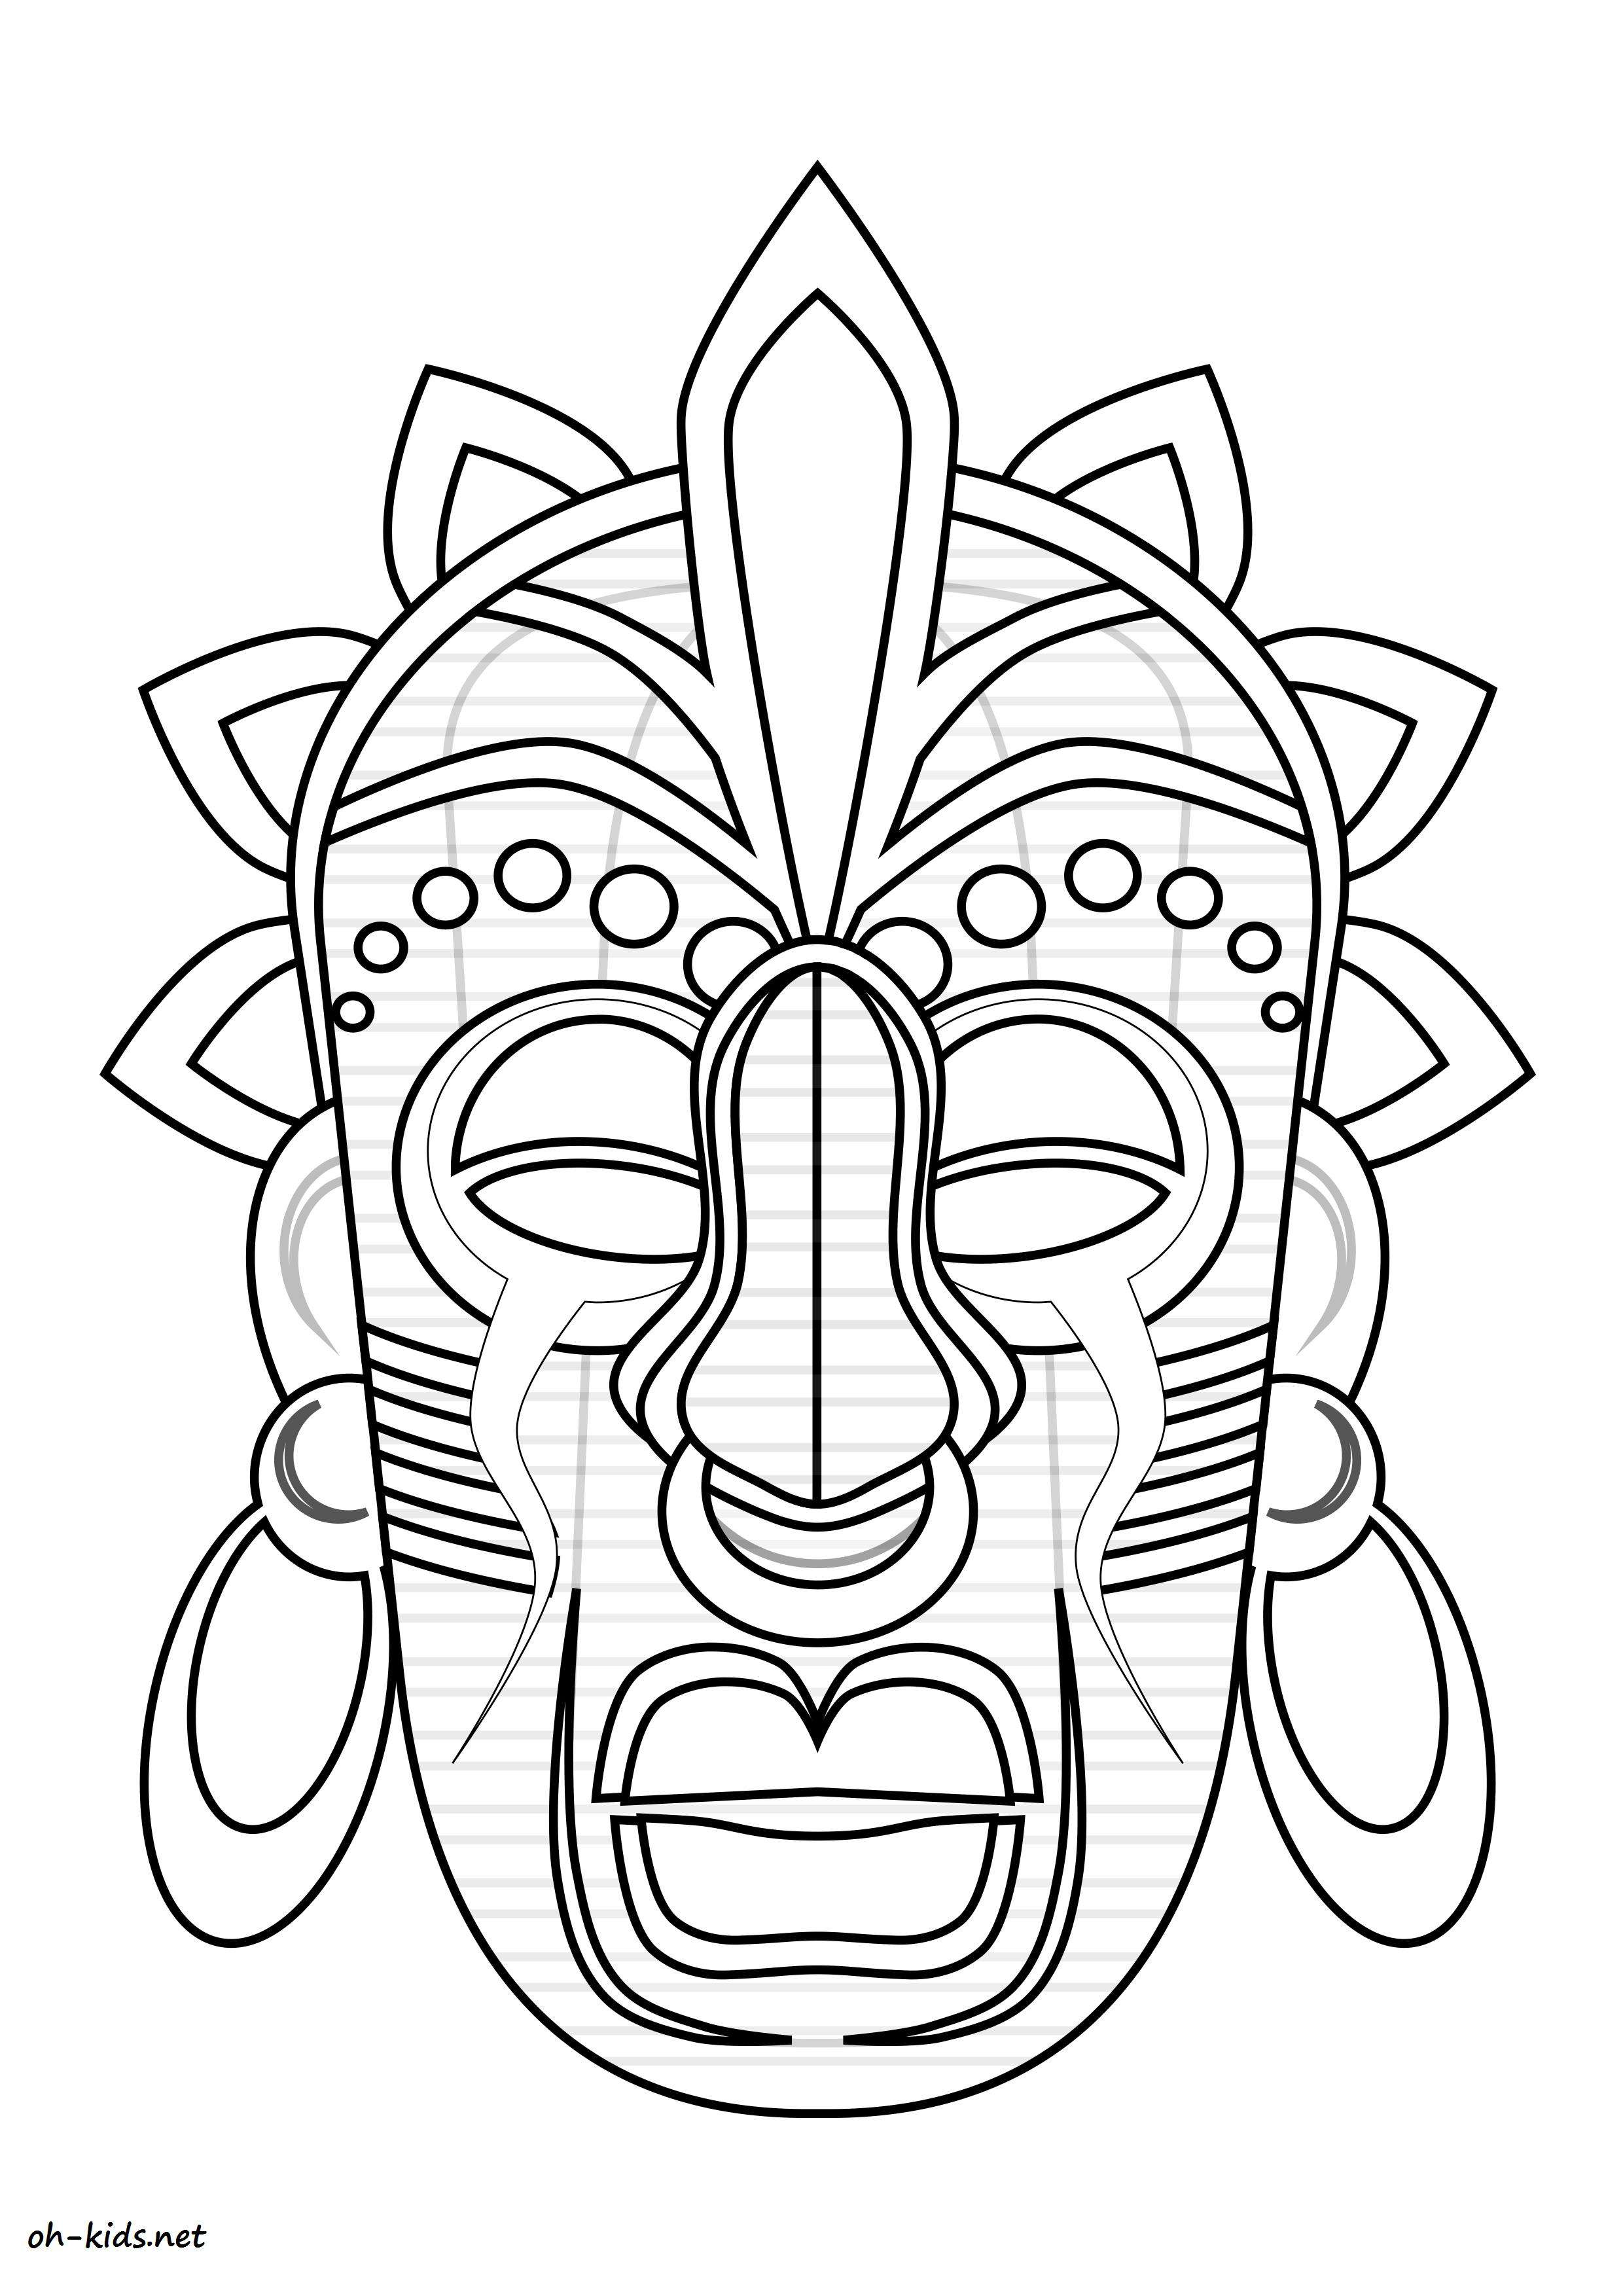 Coloriage autre page 27 of 56 oh kids fr - Coloriage masques ...